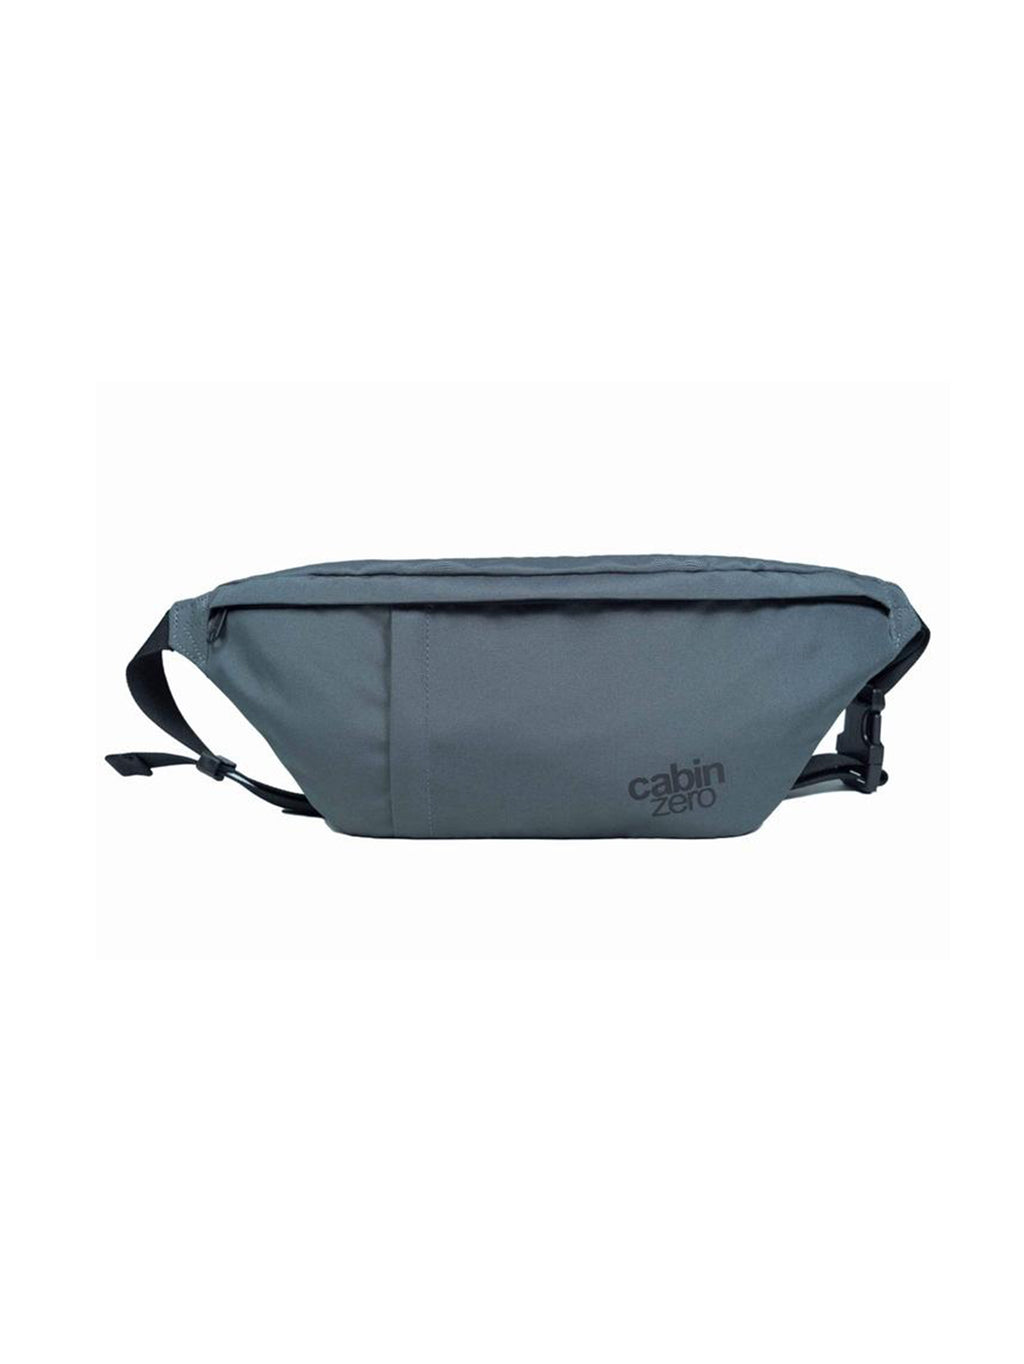 Cabinzero Hip Pack 2L in Original Grey Color